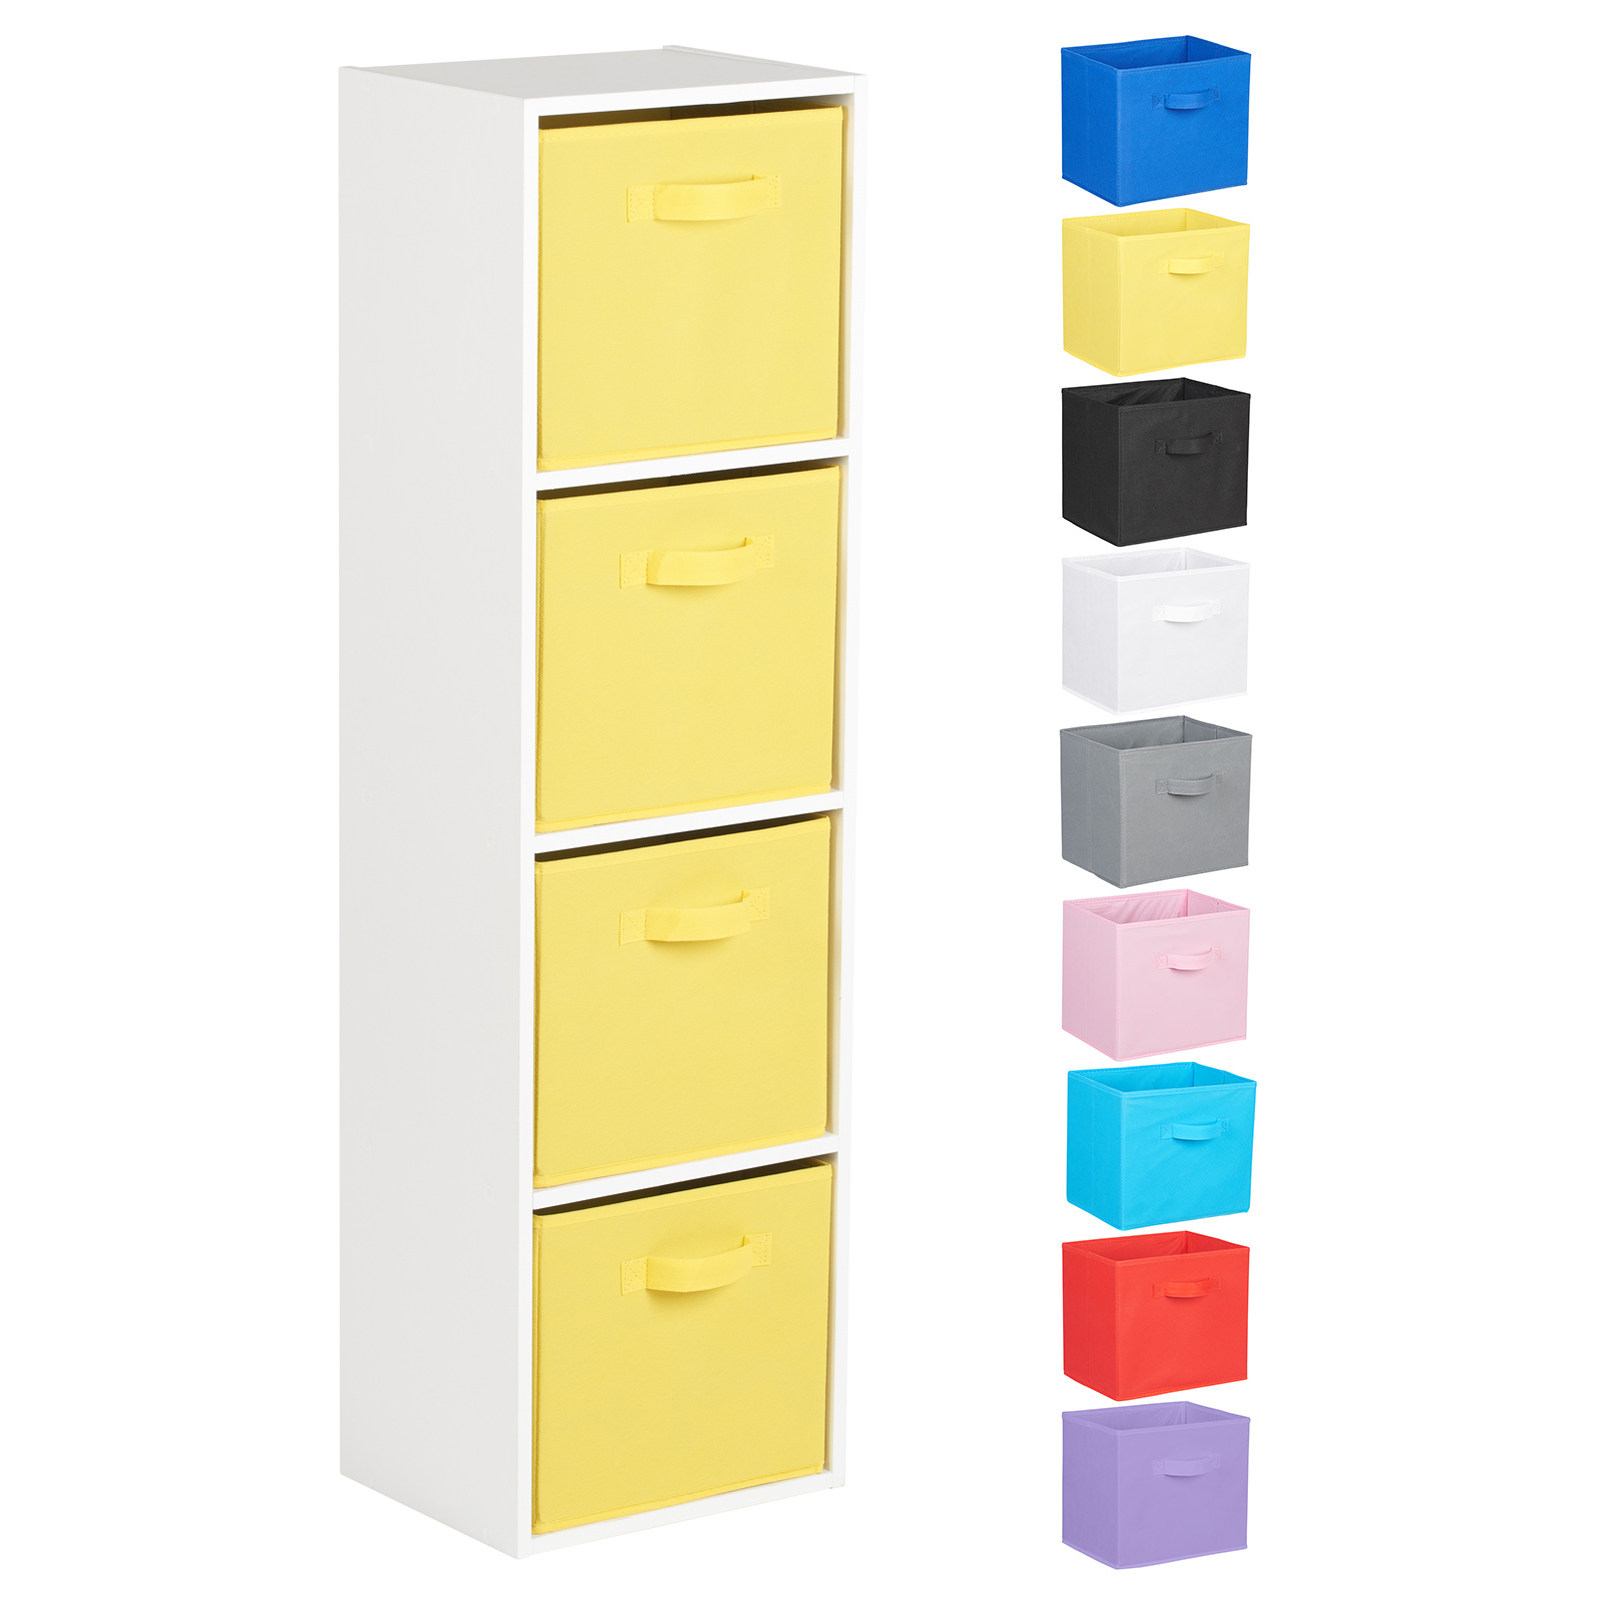 Hartleys-4-Tier-White-Bookcase-Wooden-Display-Shelving-Unit-amp-Fabric-Storage-Box thumbnail 49